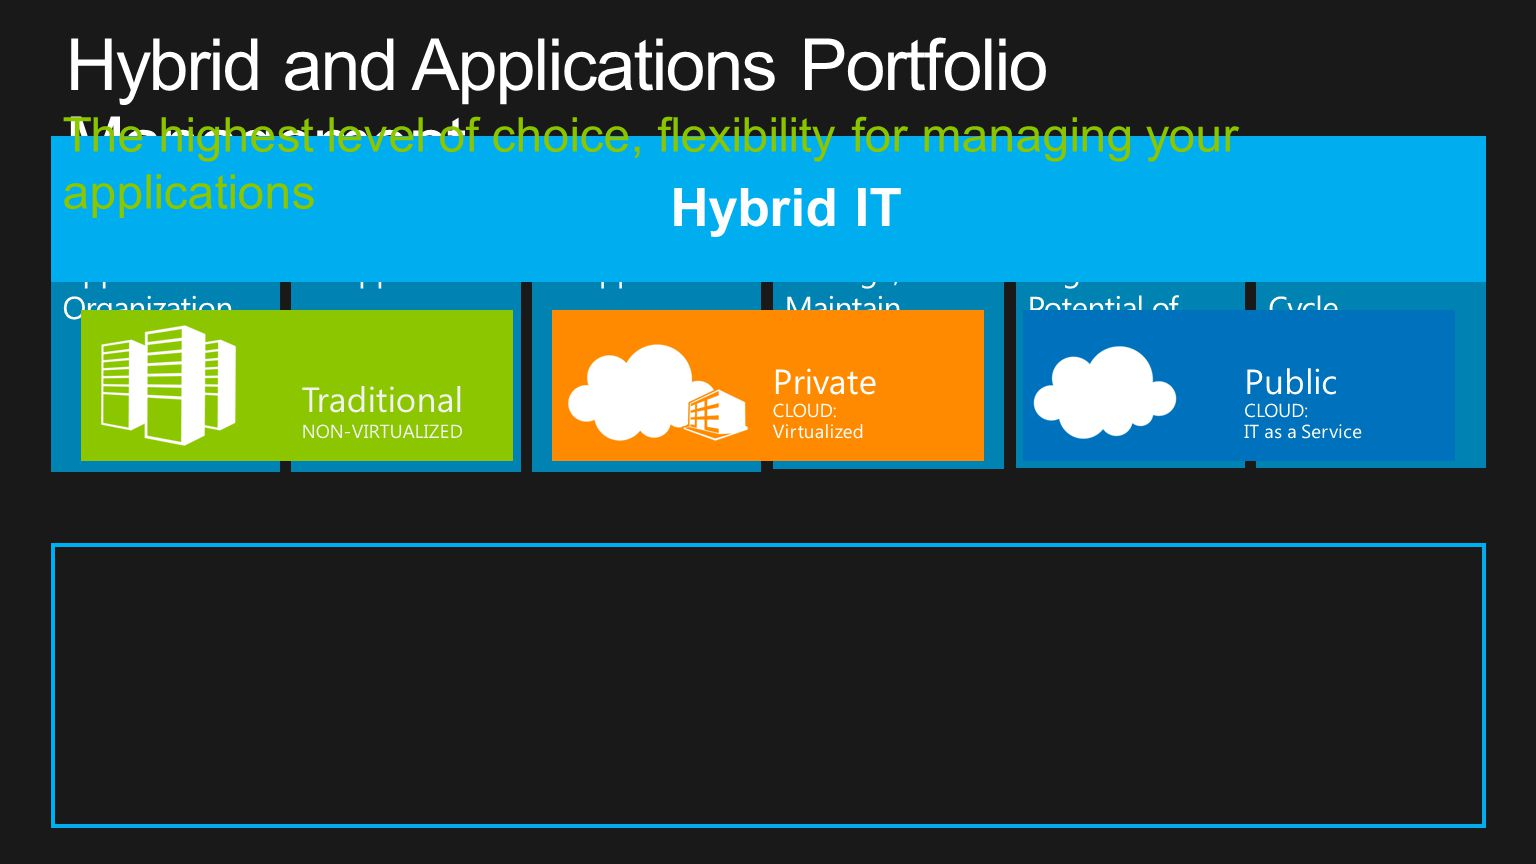 Hybrid and Applications Portfolio Management